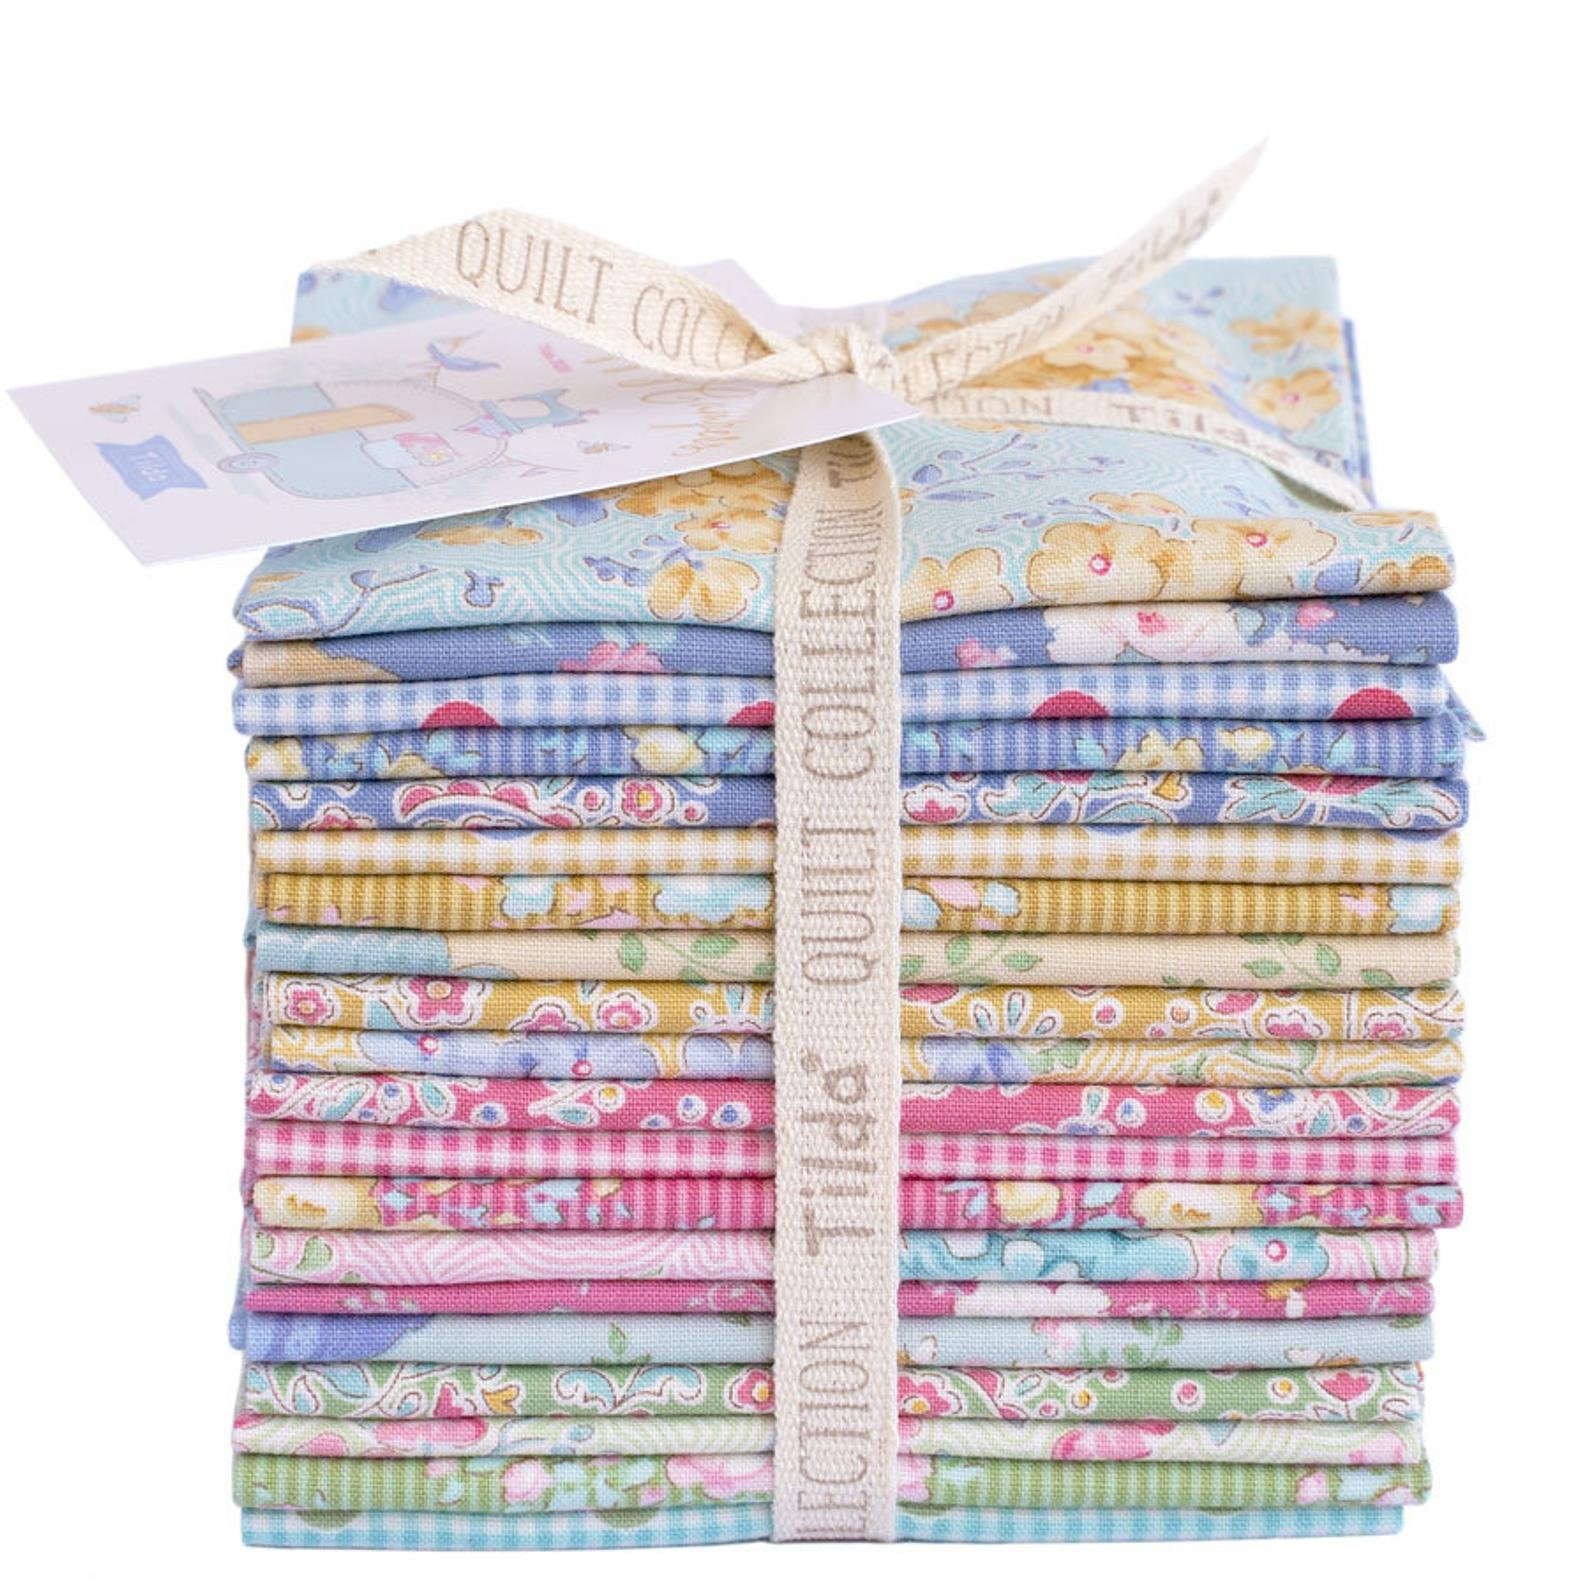 Happy Campers - Half Yard Bundle - by Tilda  - Includes 20 Half  Yard Cuts representing the full collection - copy